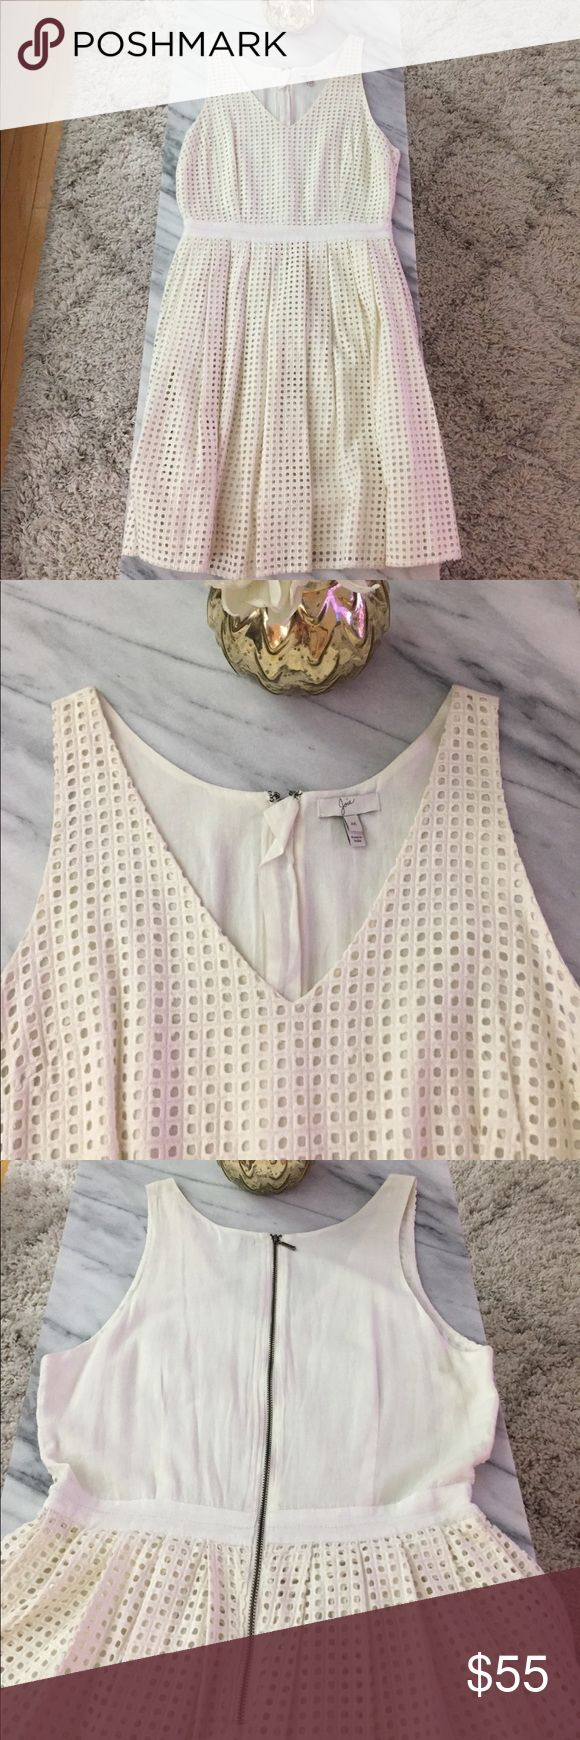 Joie White Dress Cute white joie dress with exposed zipper in the back. Perfect for spring and summer. V-neck and super flattering. Only worn once but have to sell since it is slightly bigger than my normal size of small. Joie Dresses